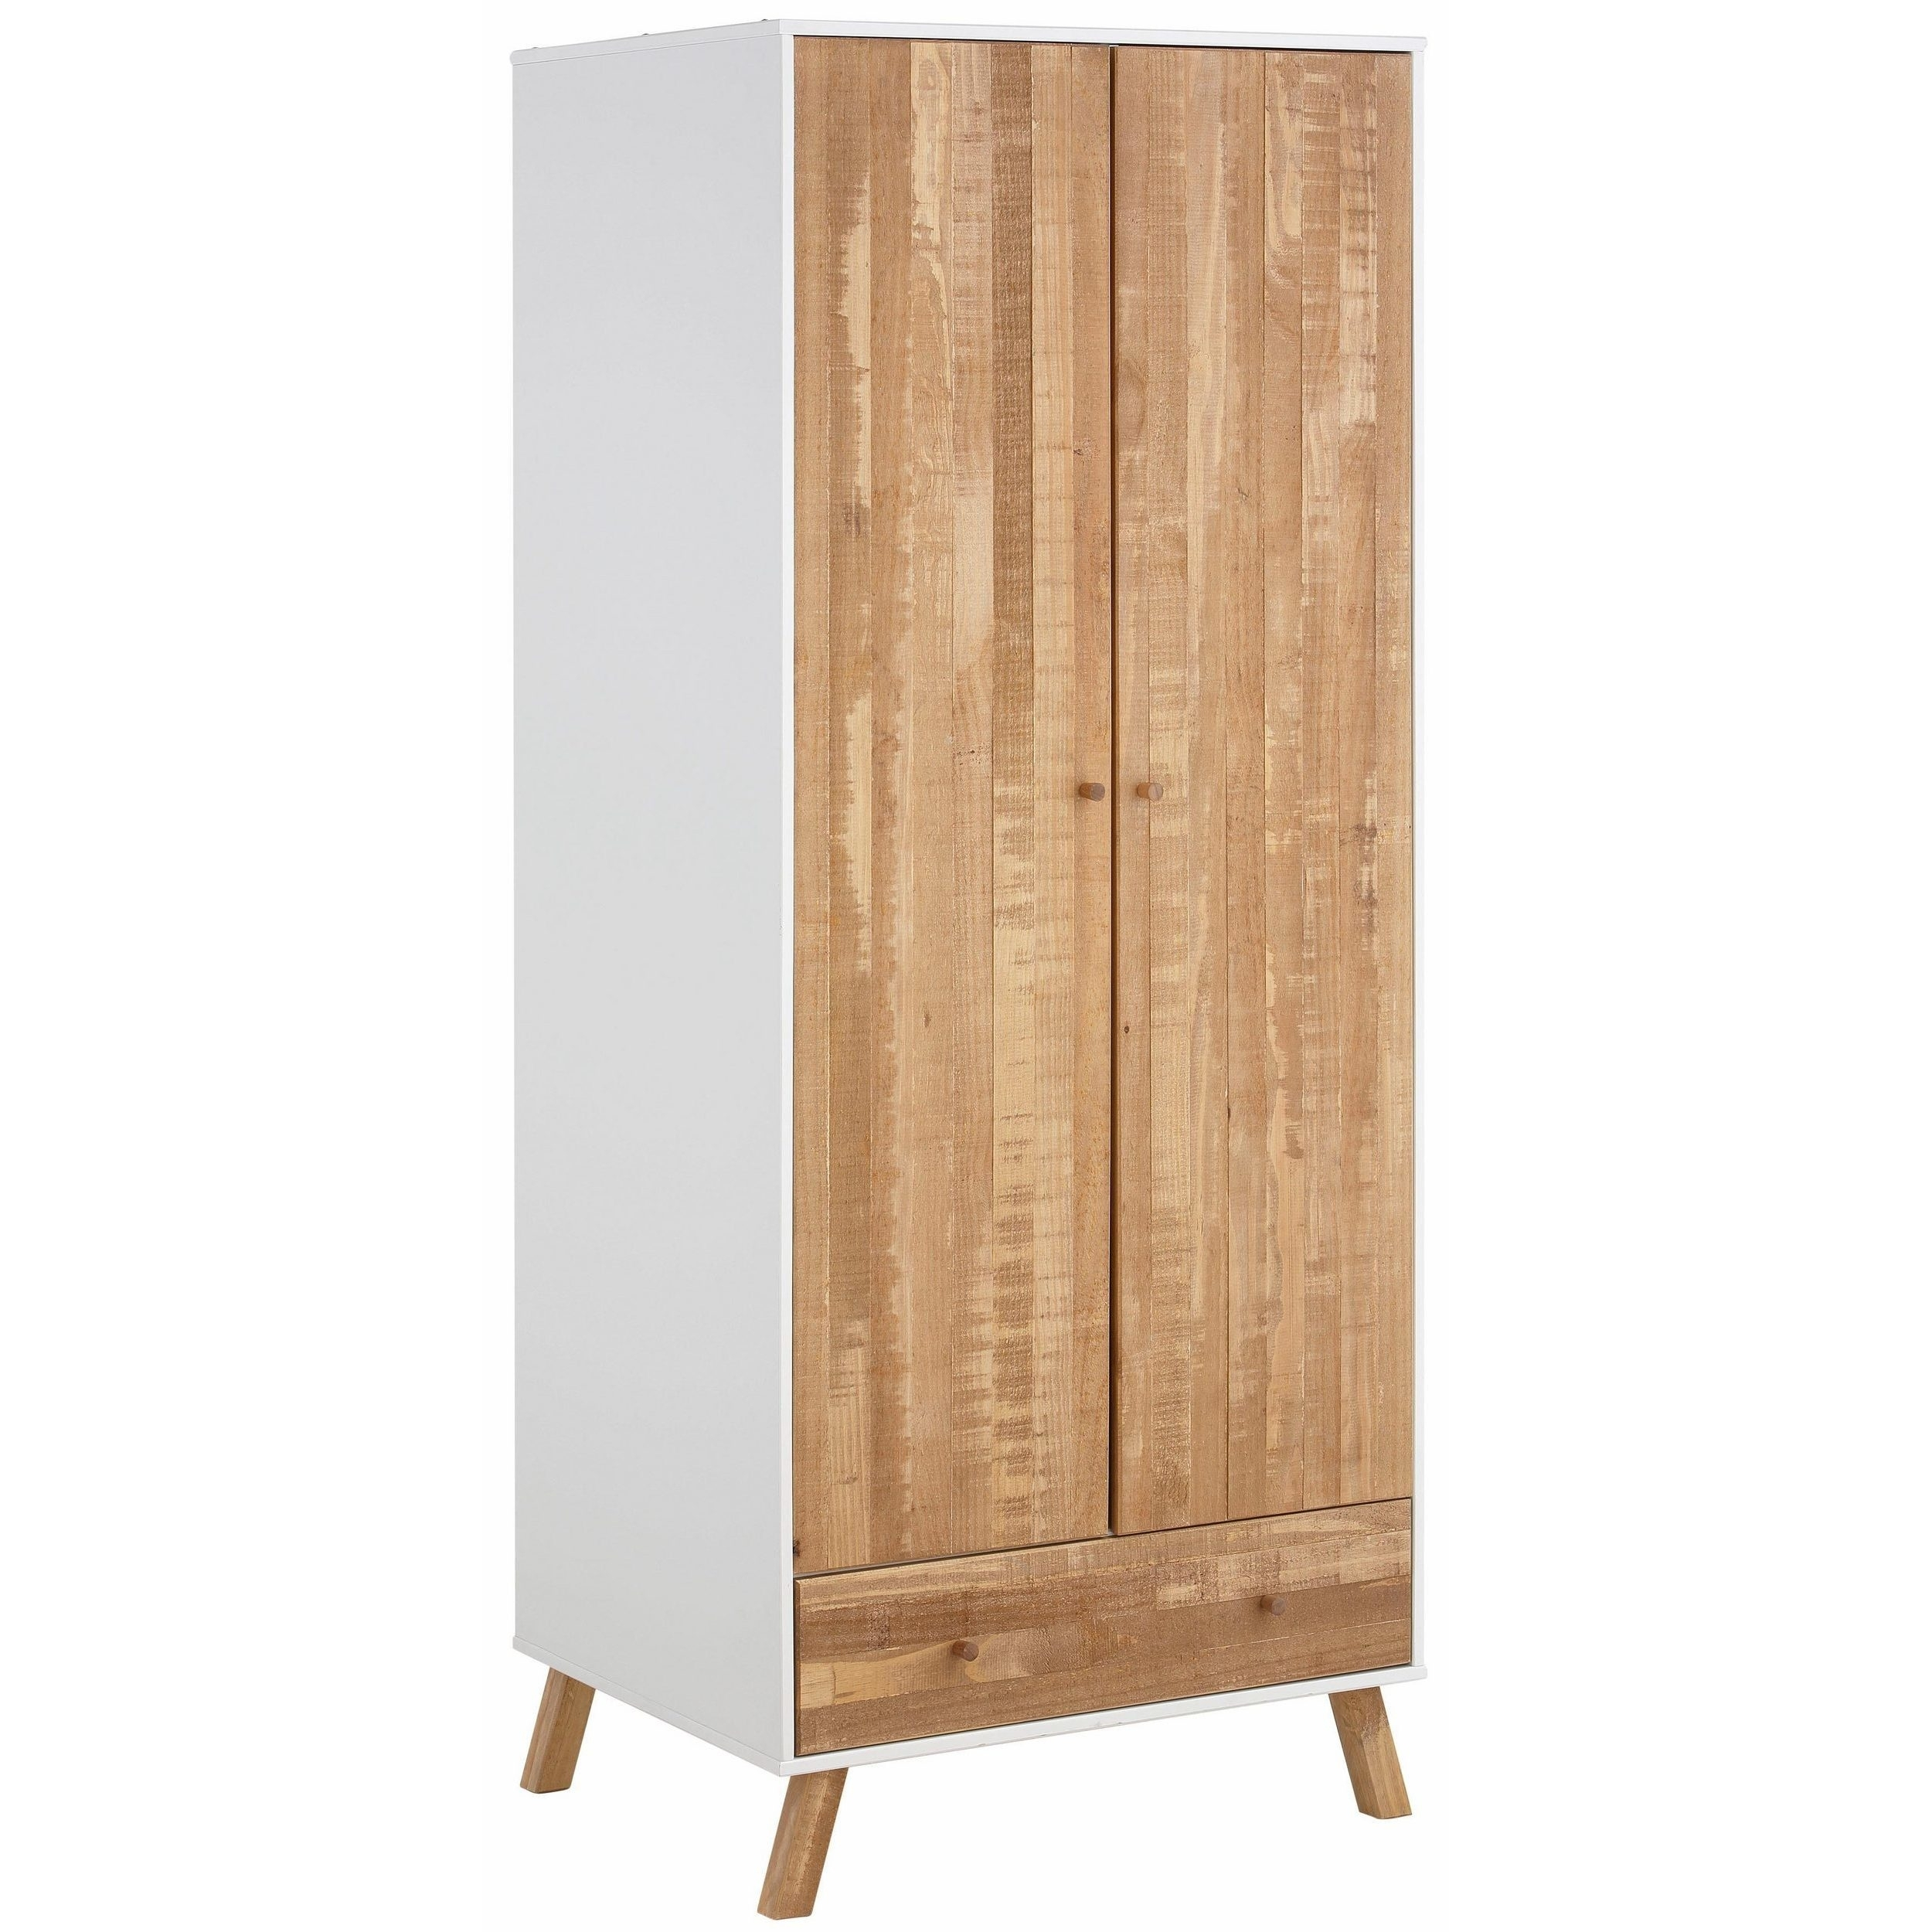 Shop Rafael 2 Door 1 Drawer Wardrobe, Solid Pine, Off White pertaining to Natural South Pine Sideboards (Image 19 of 30)